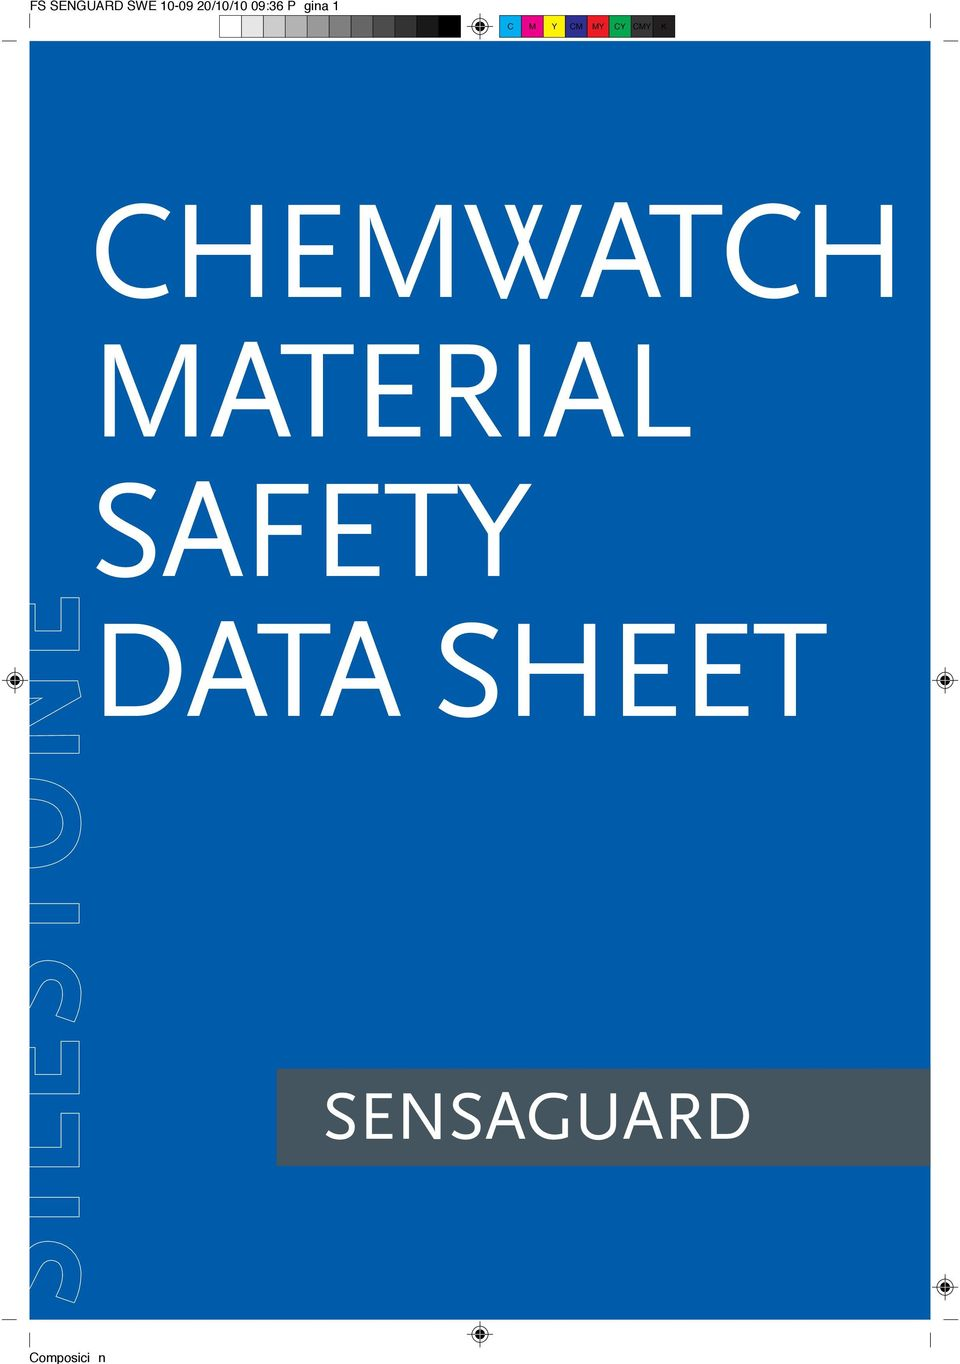 CHEMWATCH MATERIAL